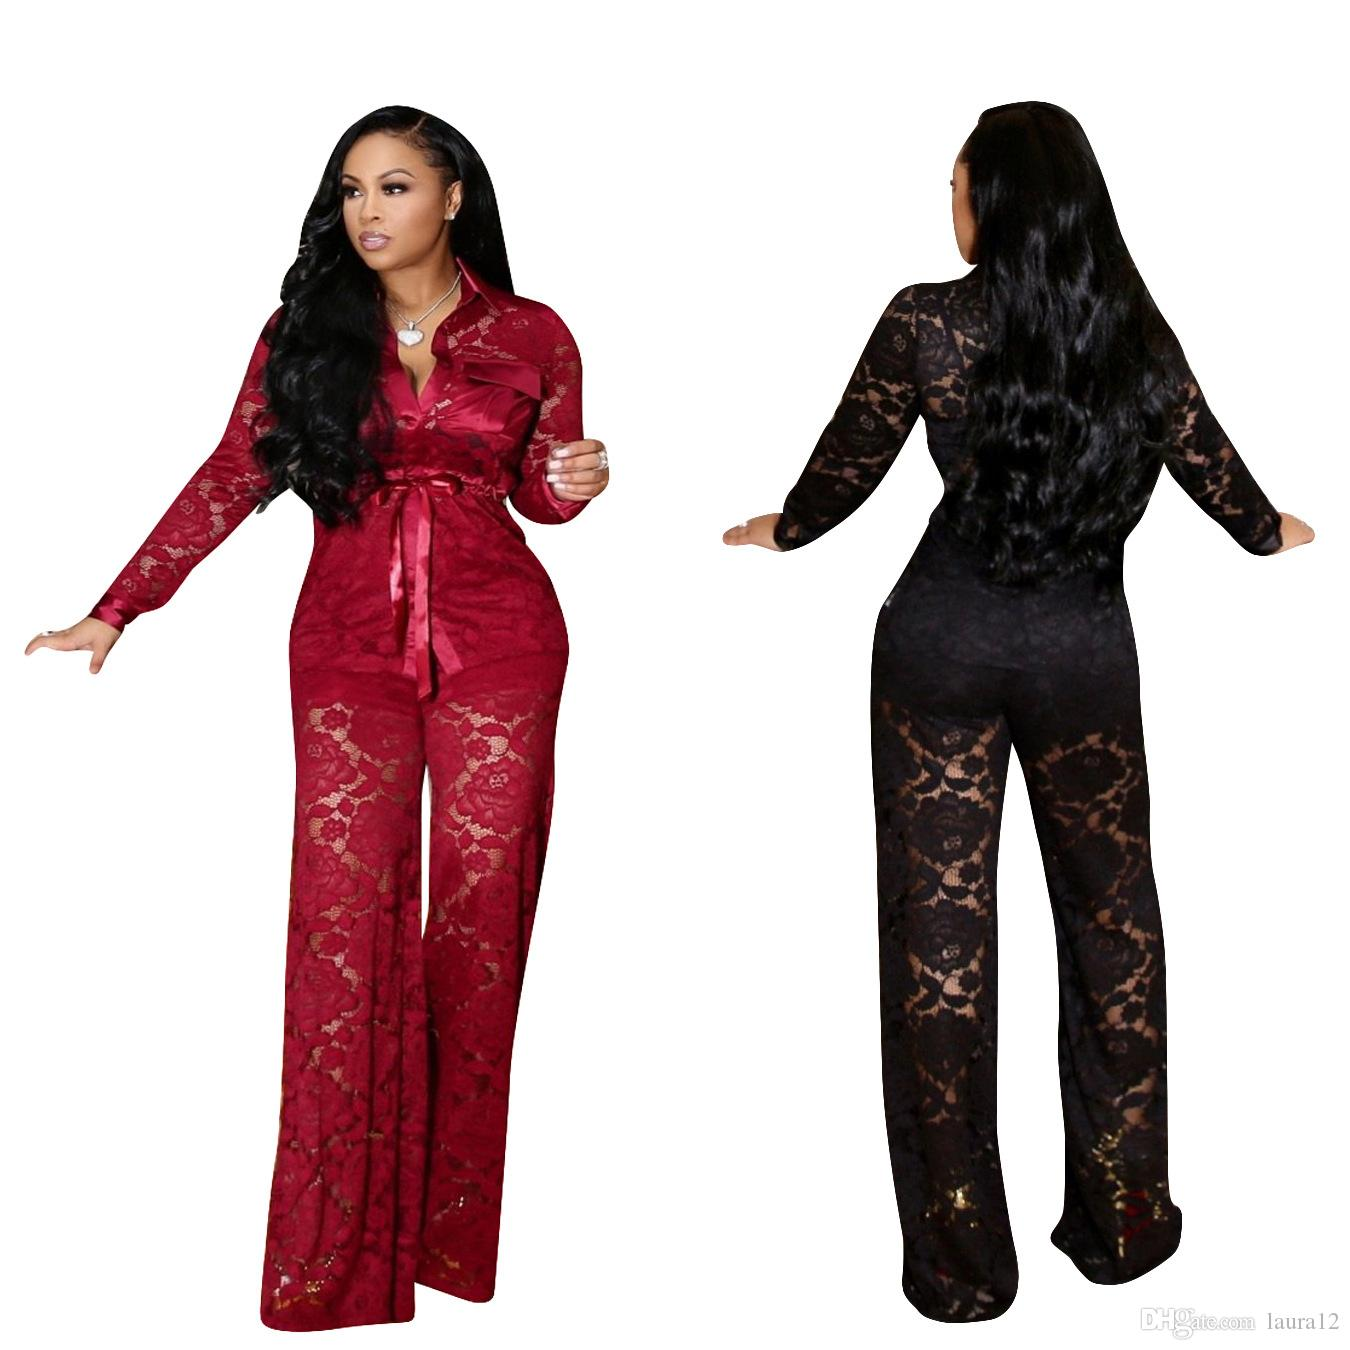 2019 Newest Fashion Lace Women Outfits Two Pieces See Though Lapel Neck Top and Long Pants Club Party Night Out Shirt Suits